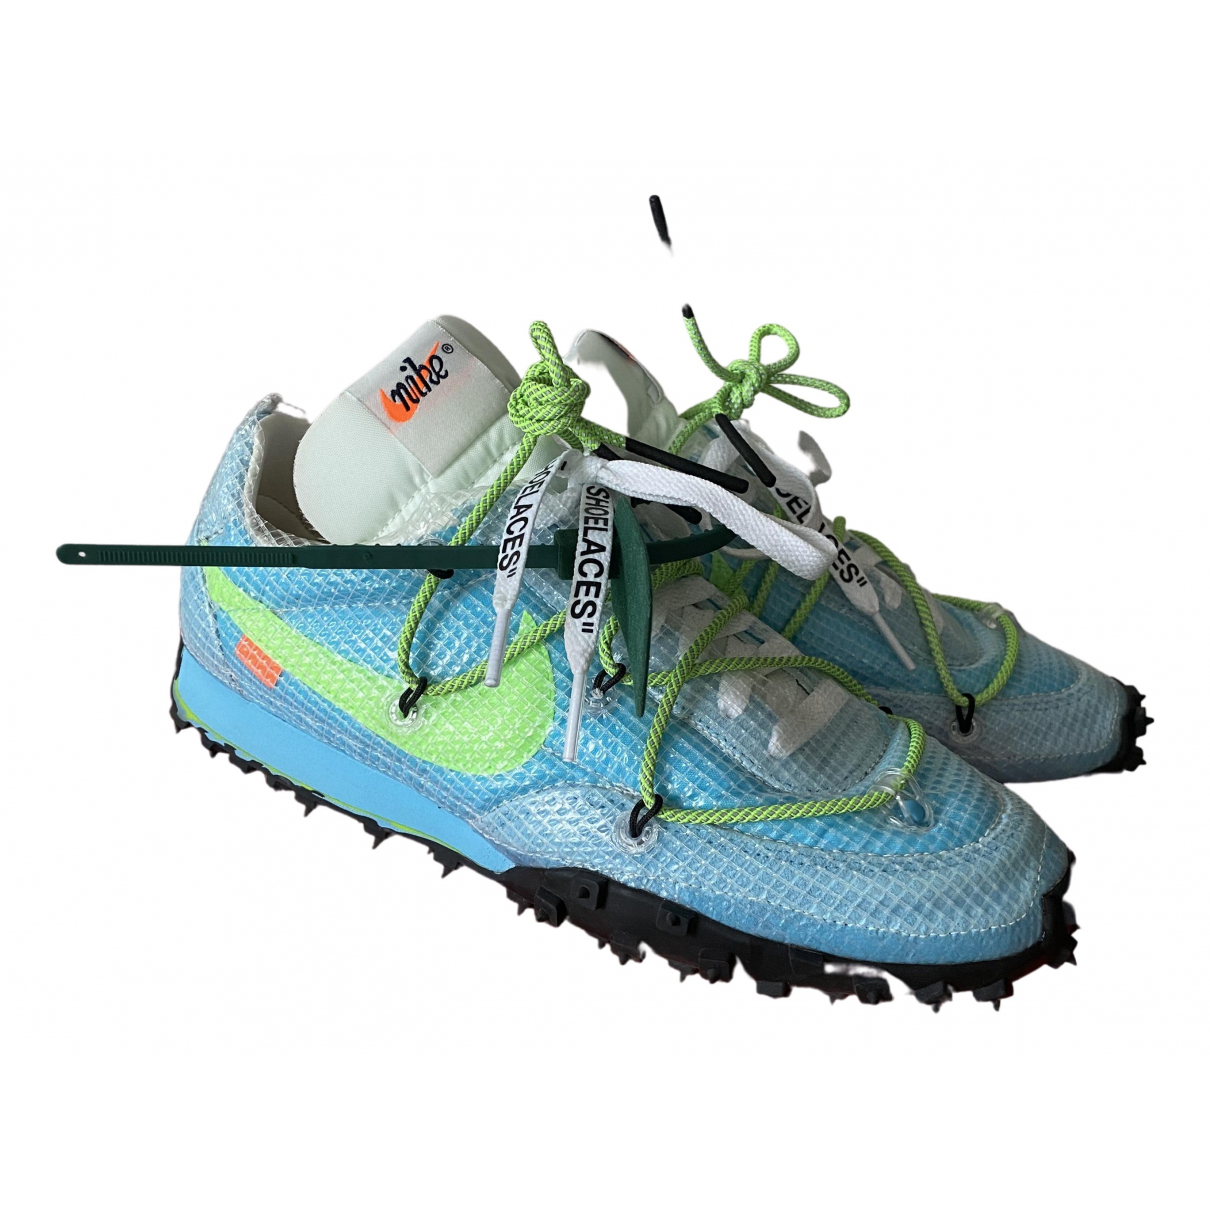 Nike X Off-white Waffle Racer Blue Trainers for Women 38.5 EU